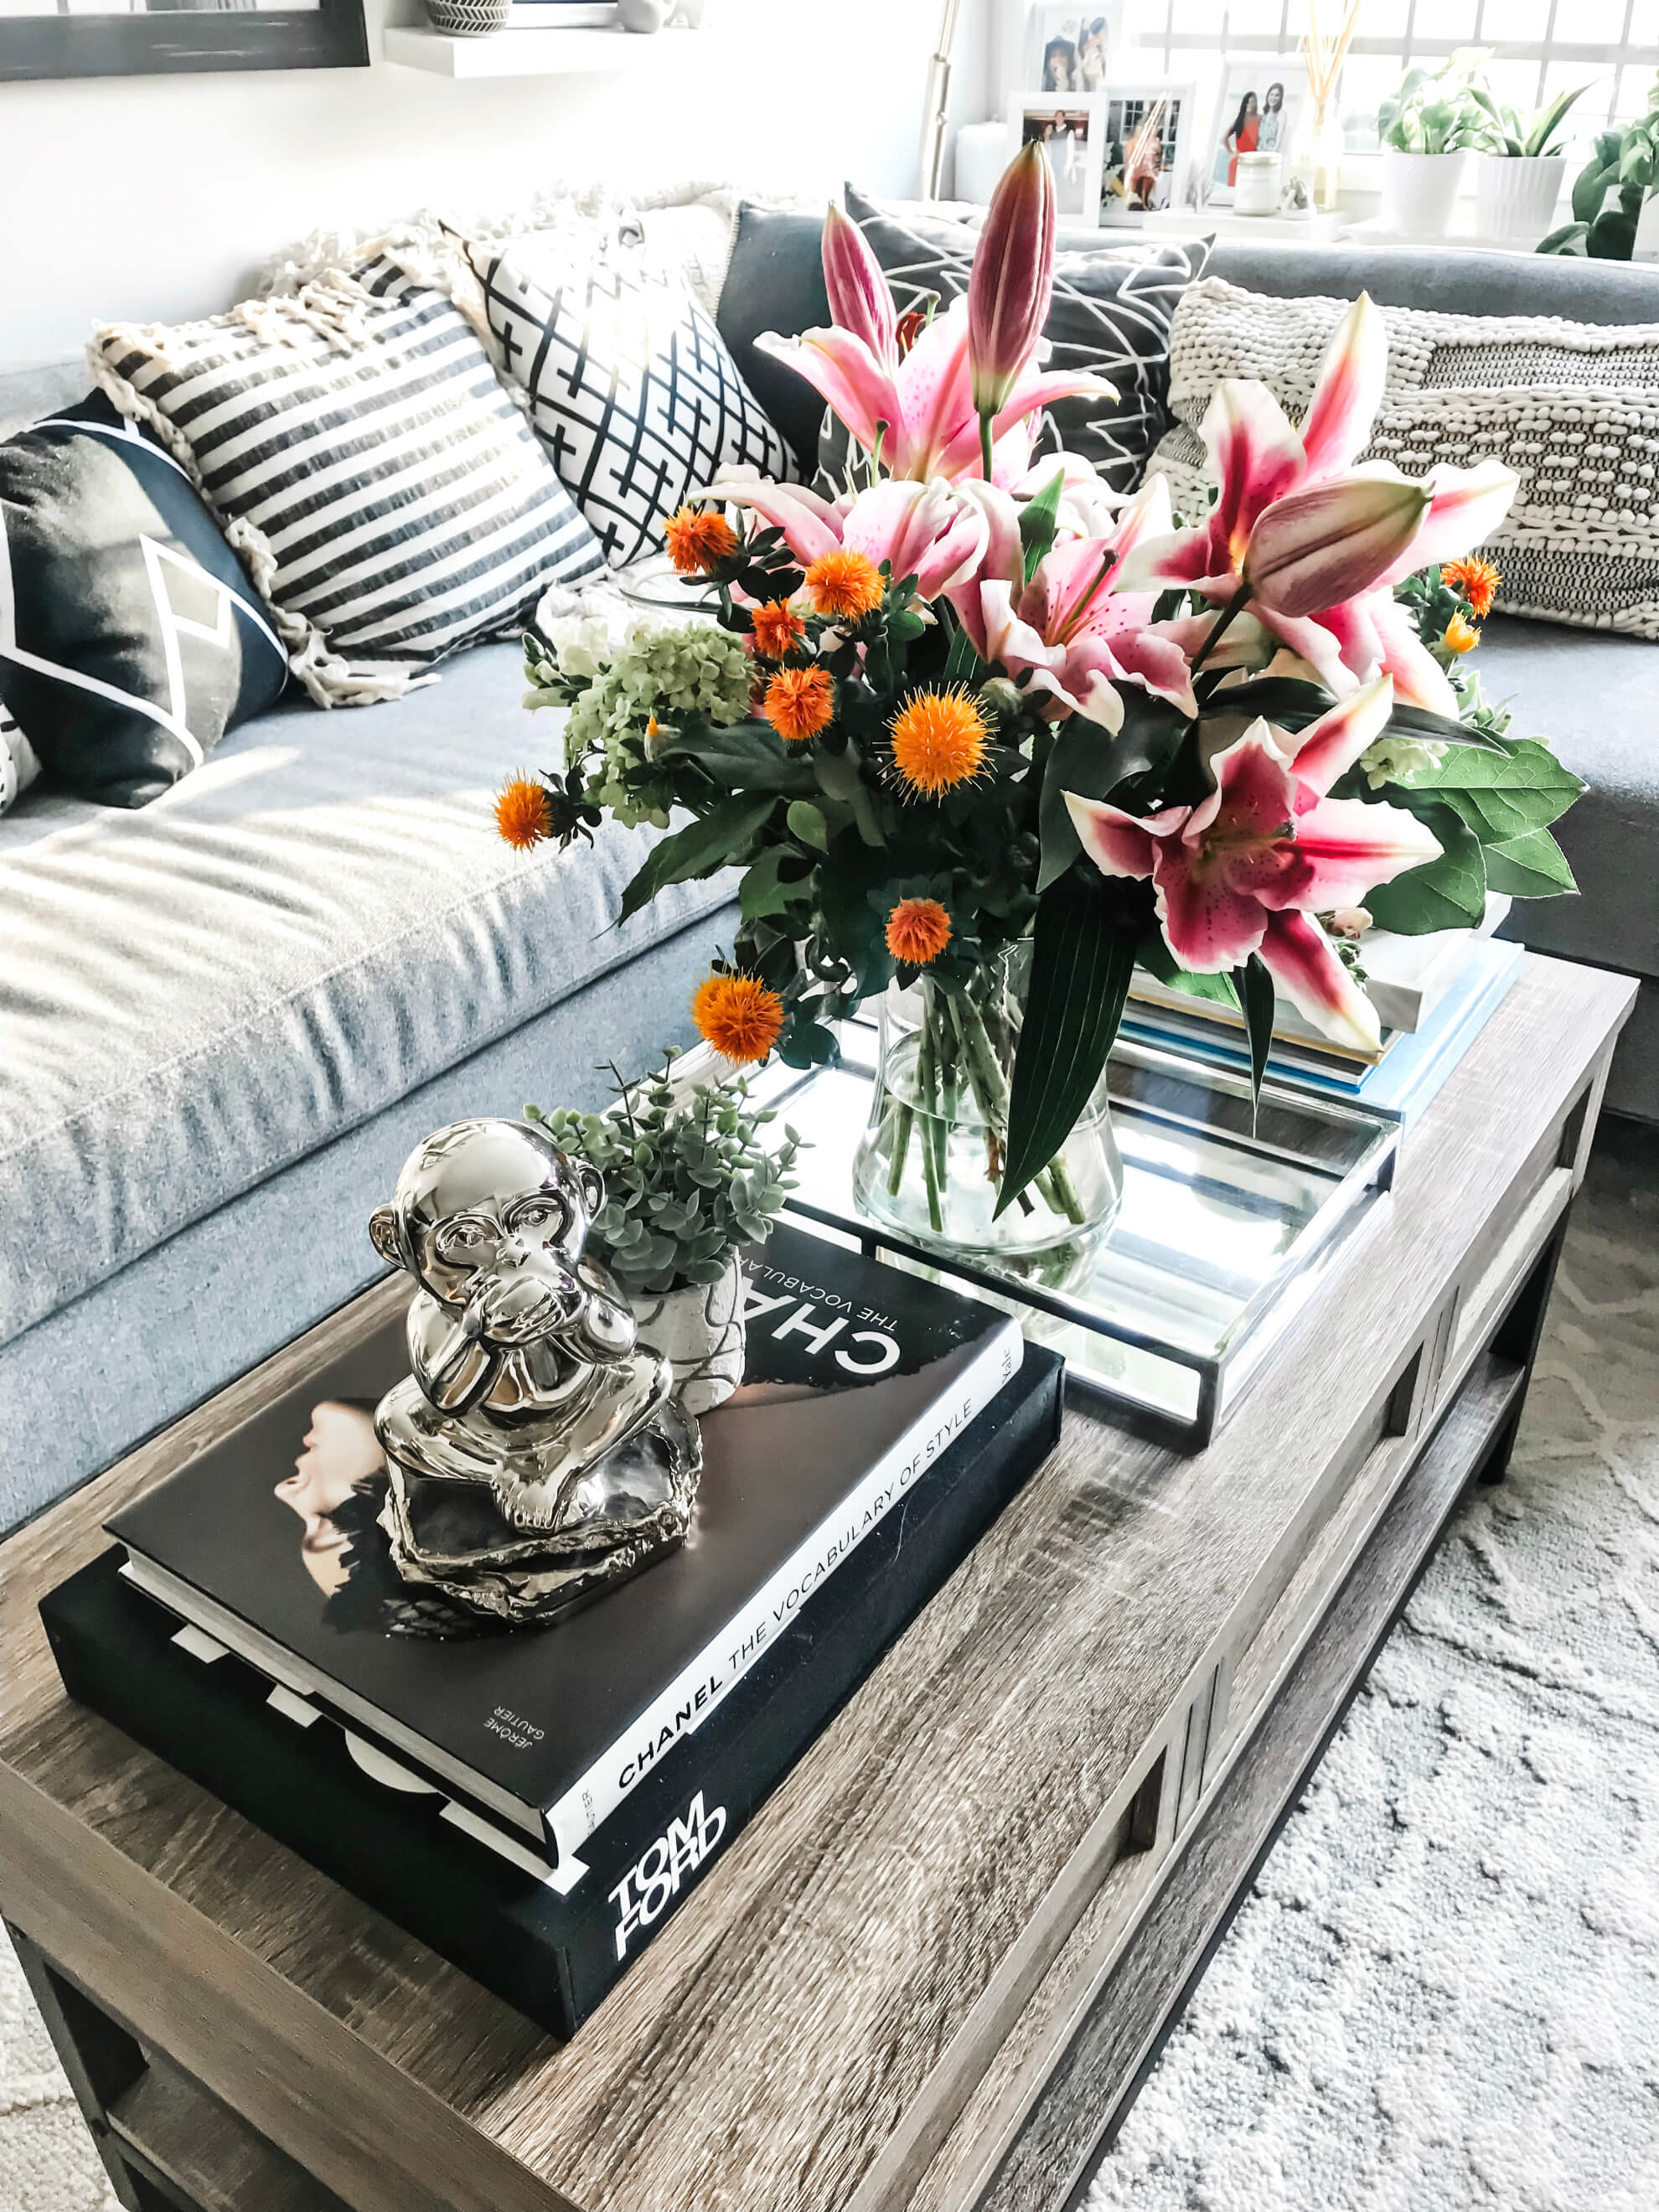 My Favorite Coffee Table Books To Gift Display To Be Bright